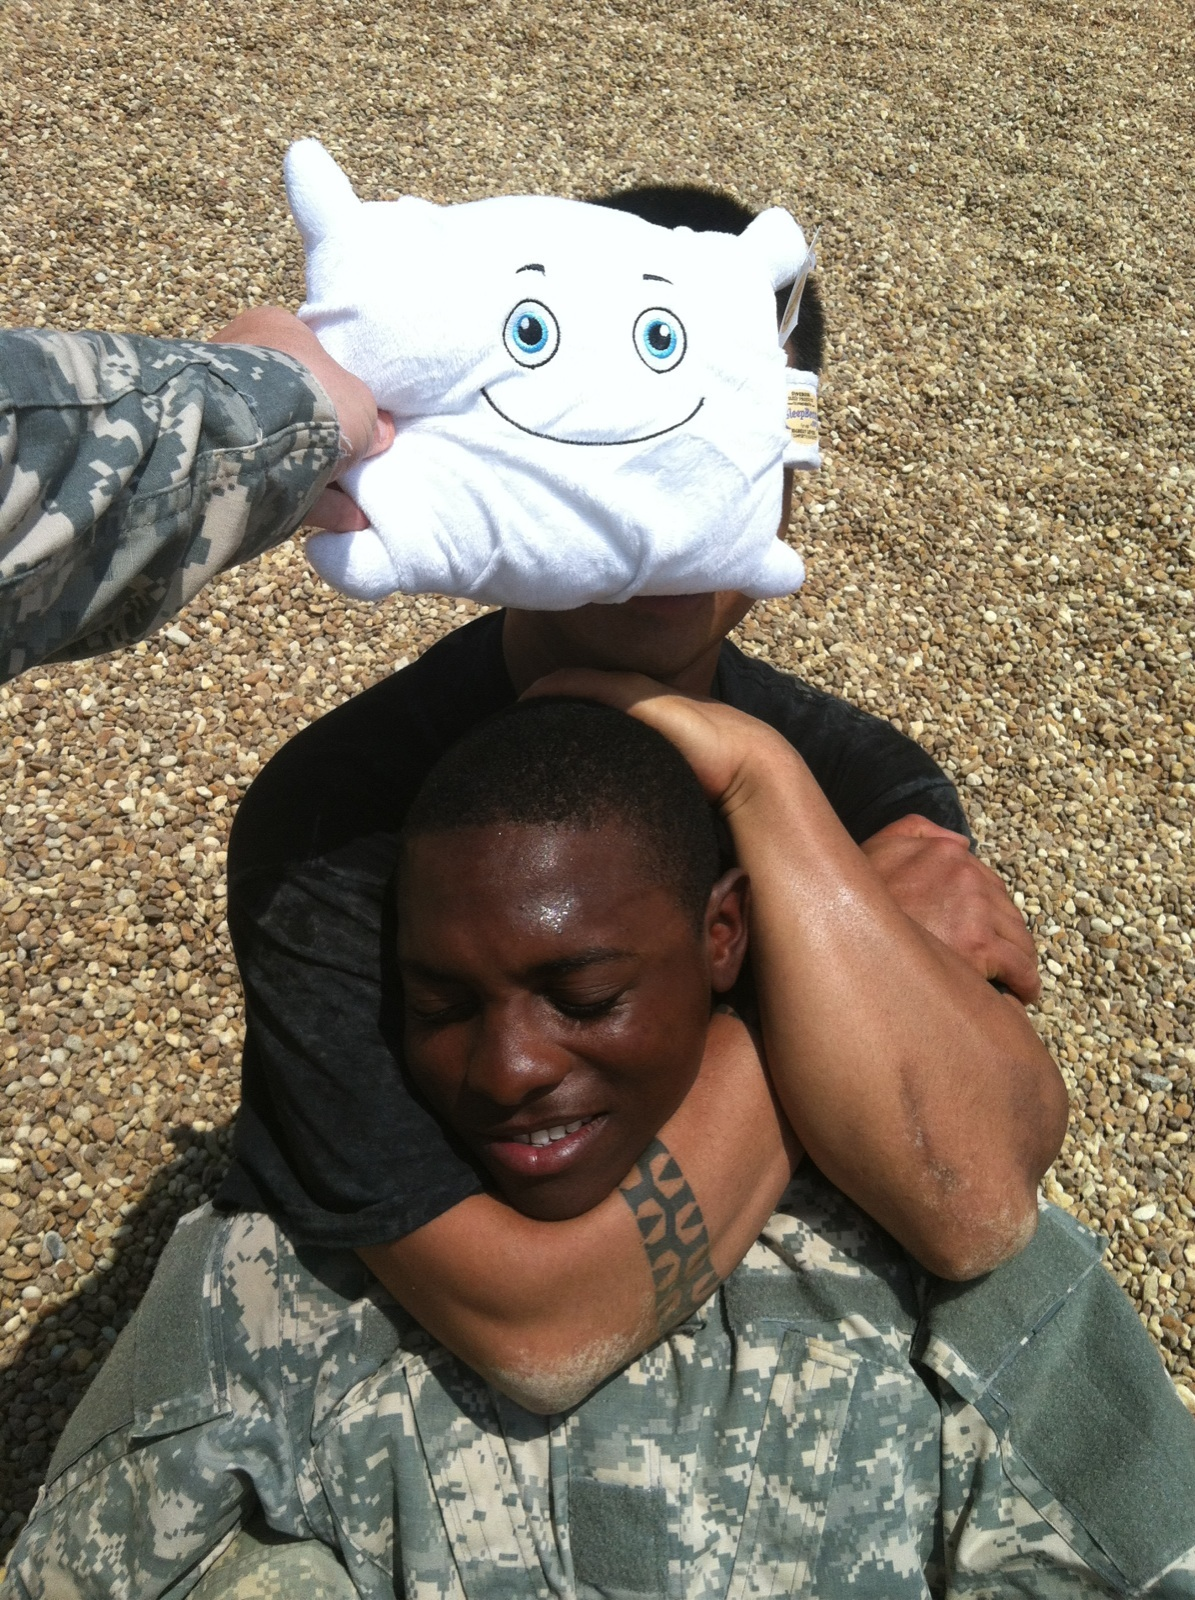 Drill Sgt. Naptime teaching combat holds